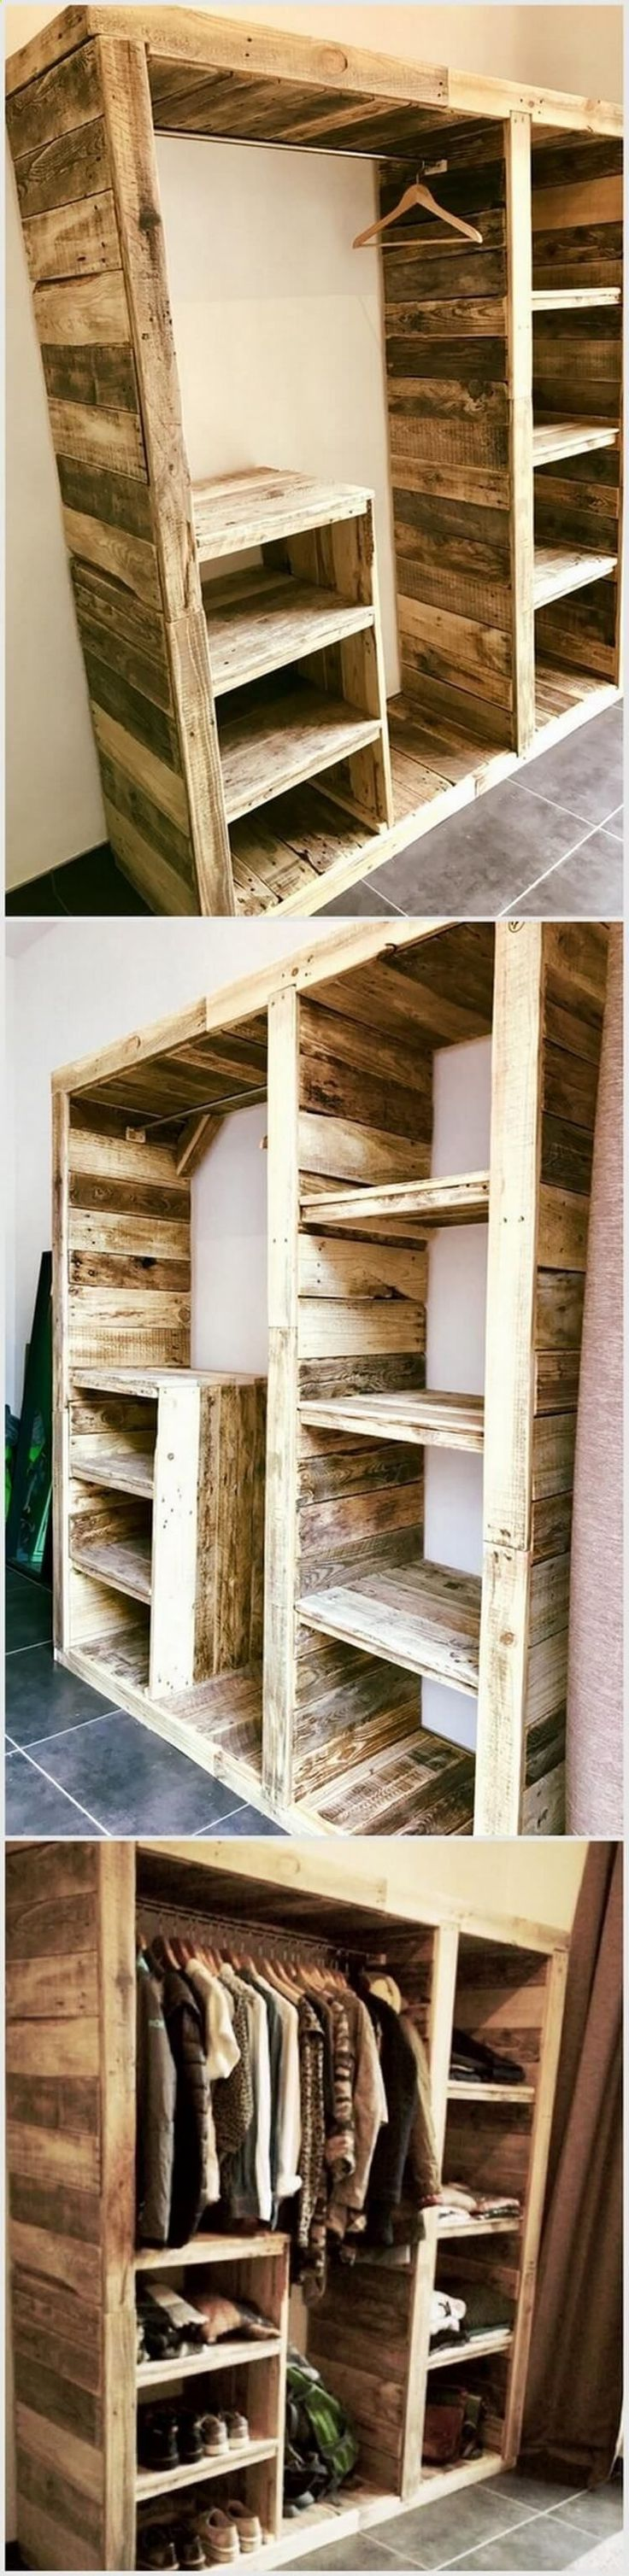 Teds Wood Working Recycled Pallet Wardrobe